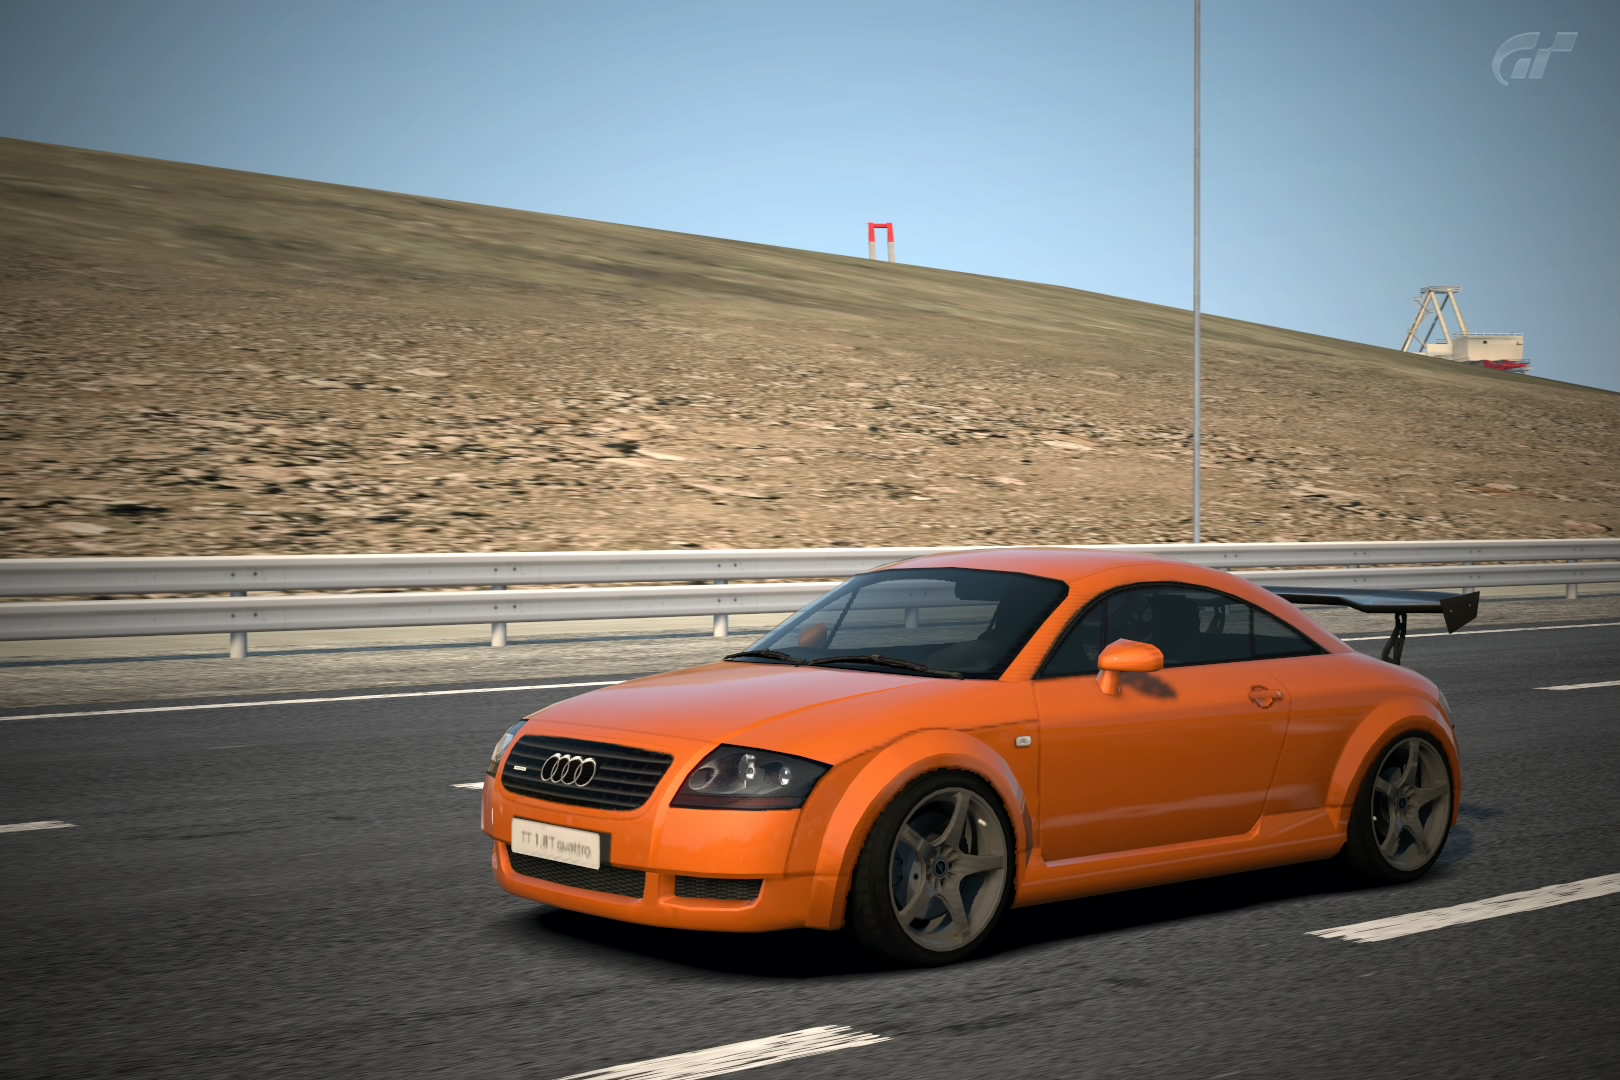 audi tt coupe 1 8t quattro 39 00 tuned by lubeify200 on deviantart. Black Bedroom Furniture Sets. Home Design Ideas